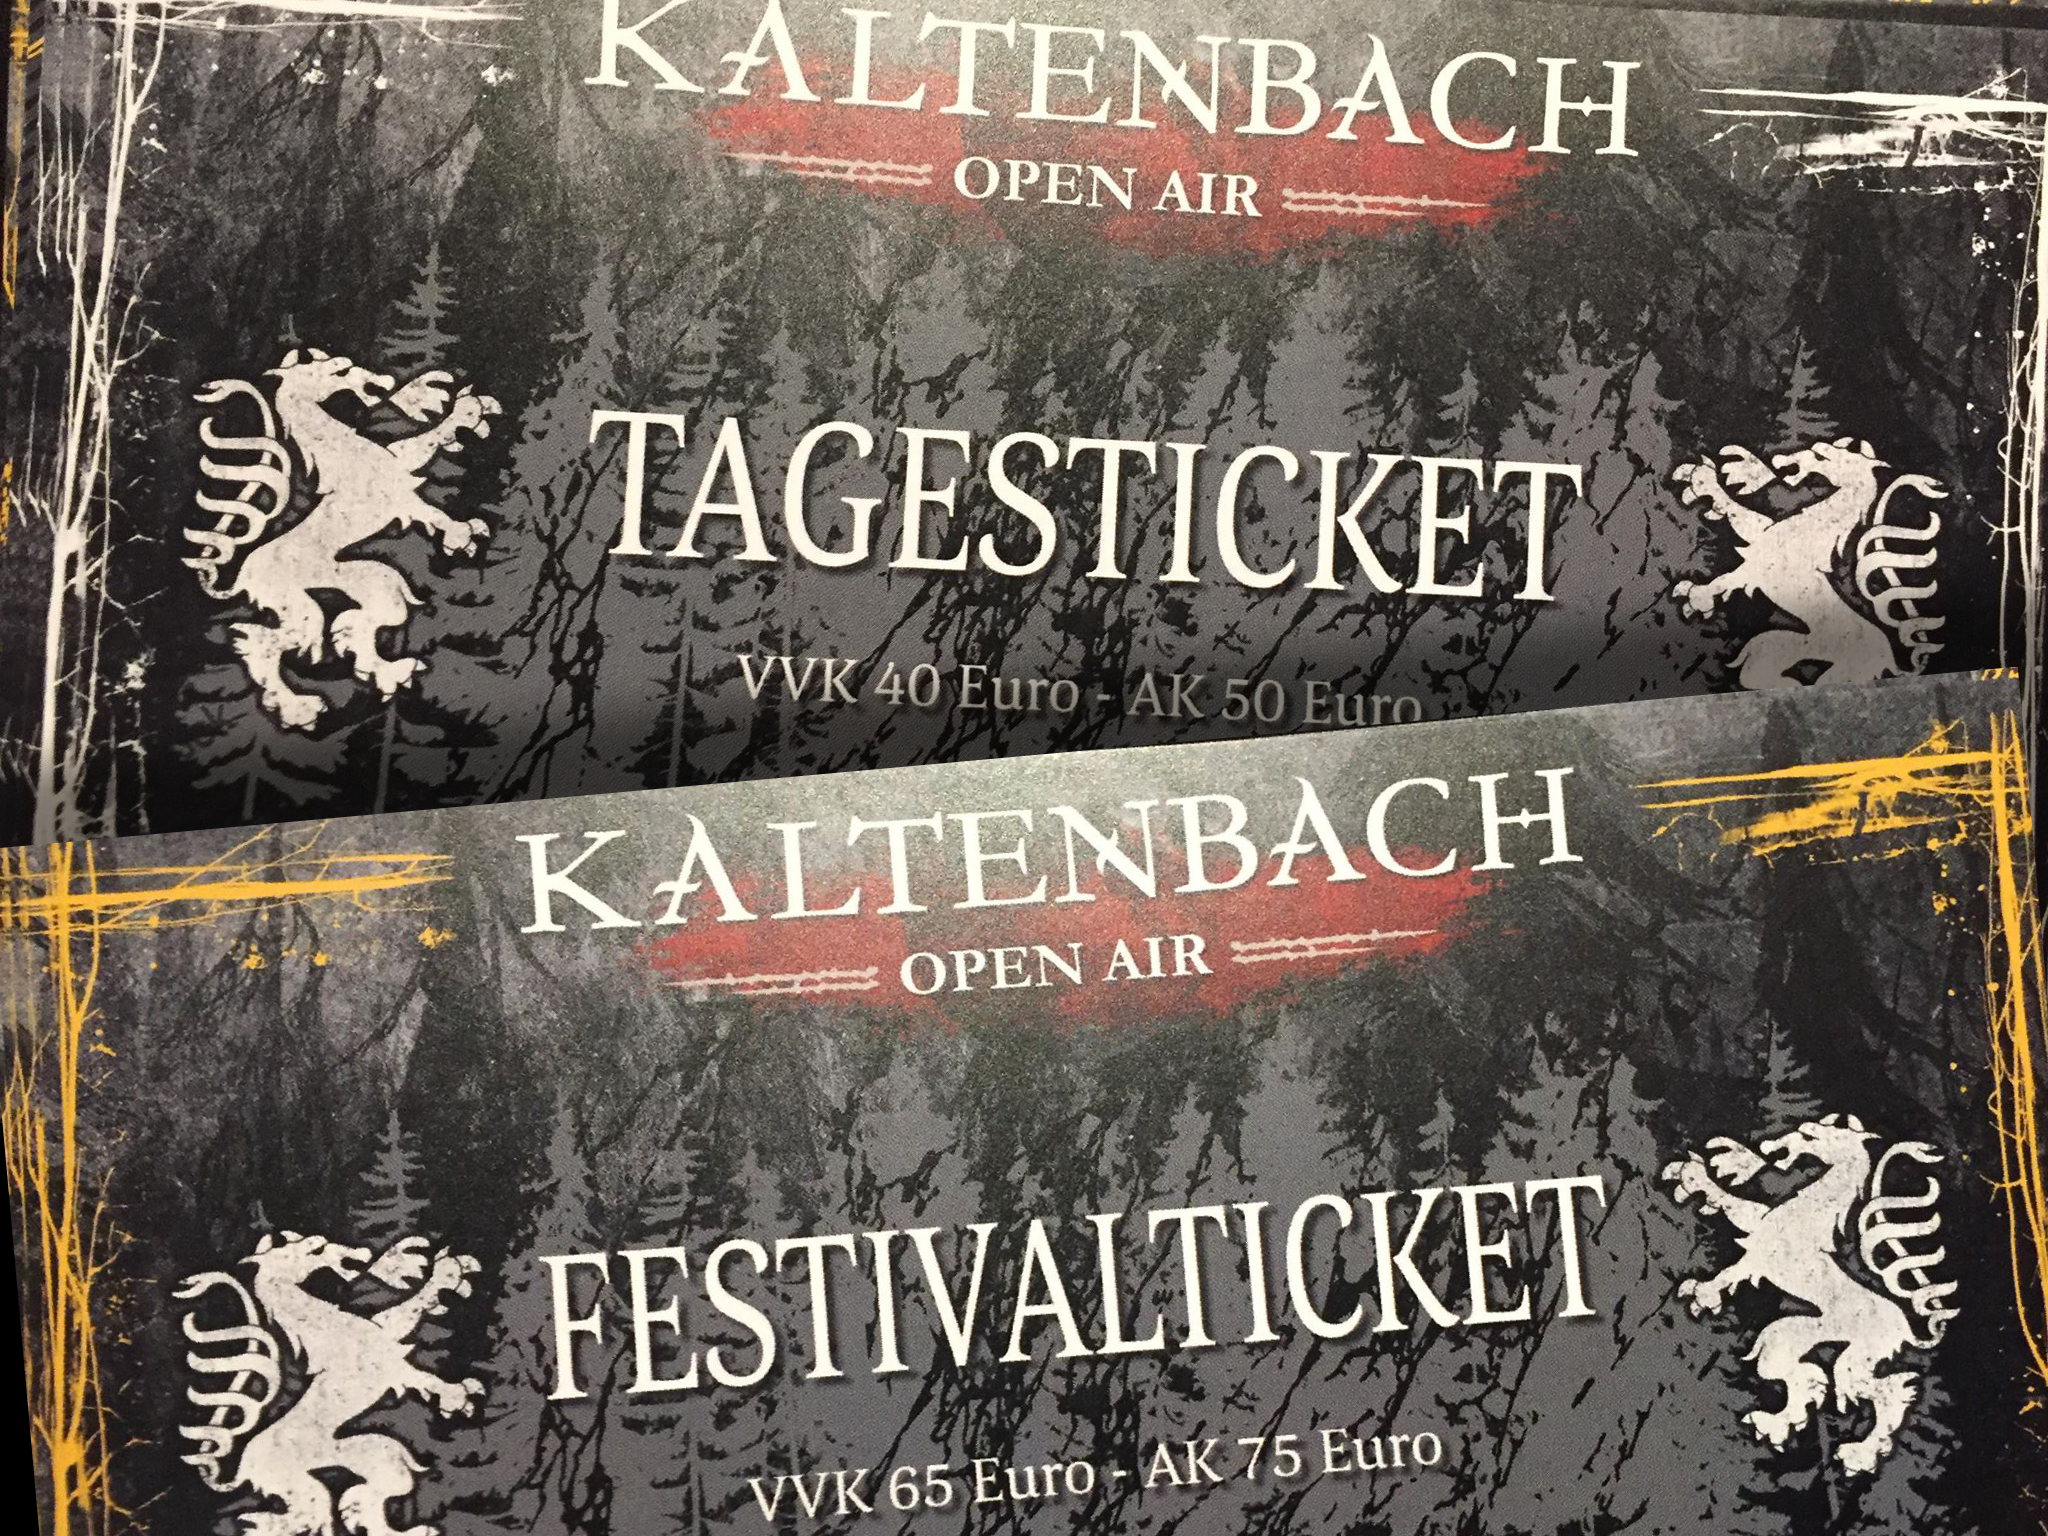 Ticket to Kaltenbach Open Air